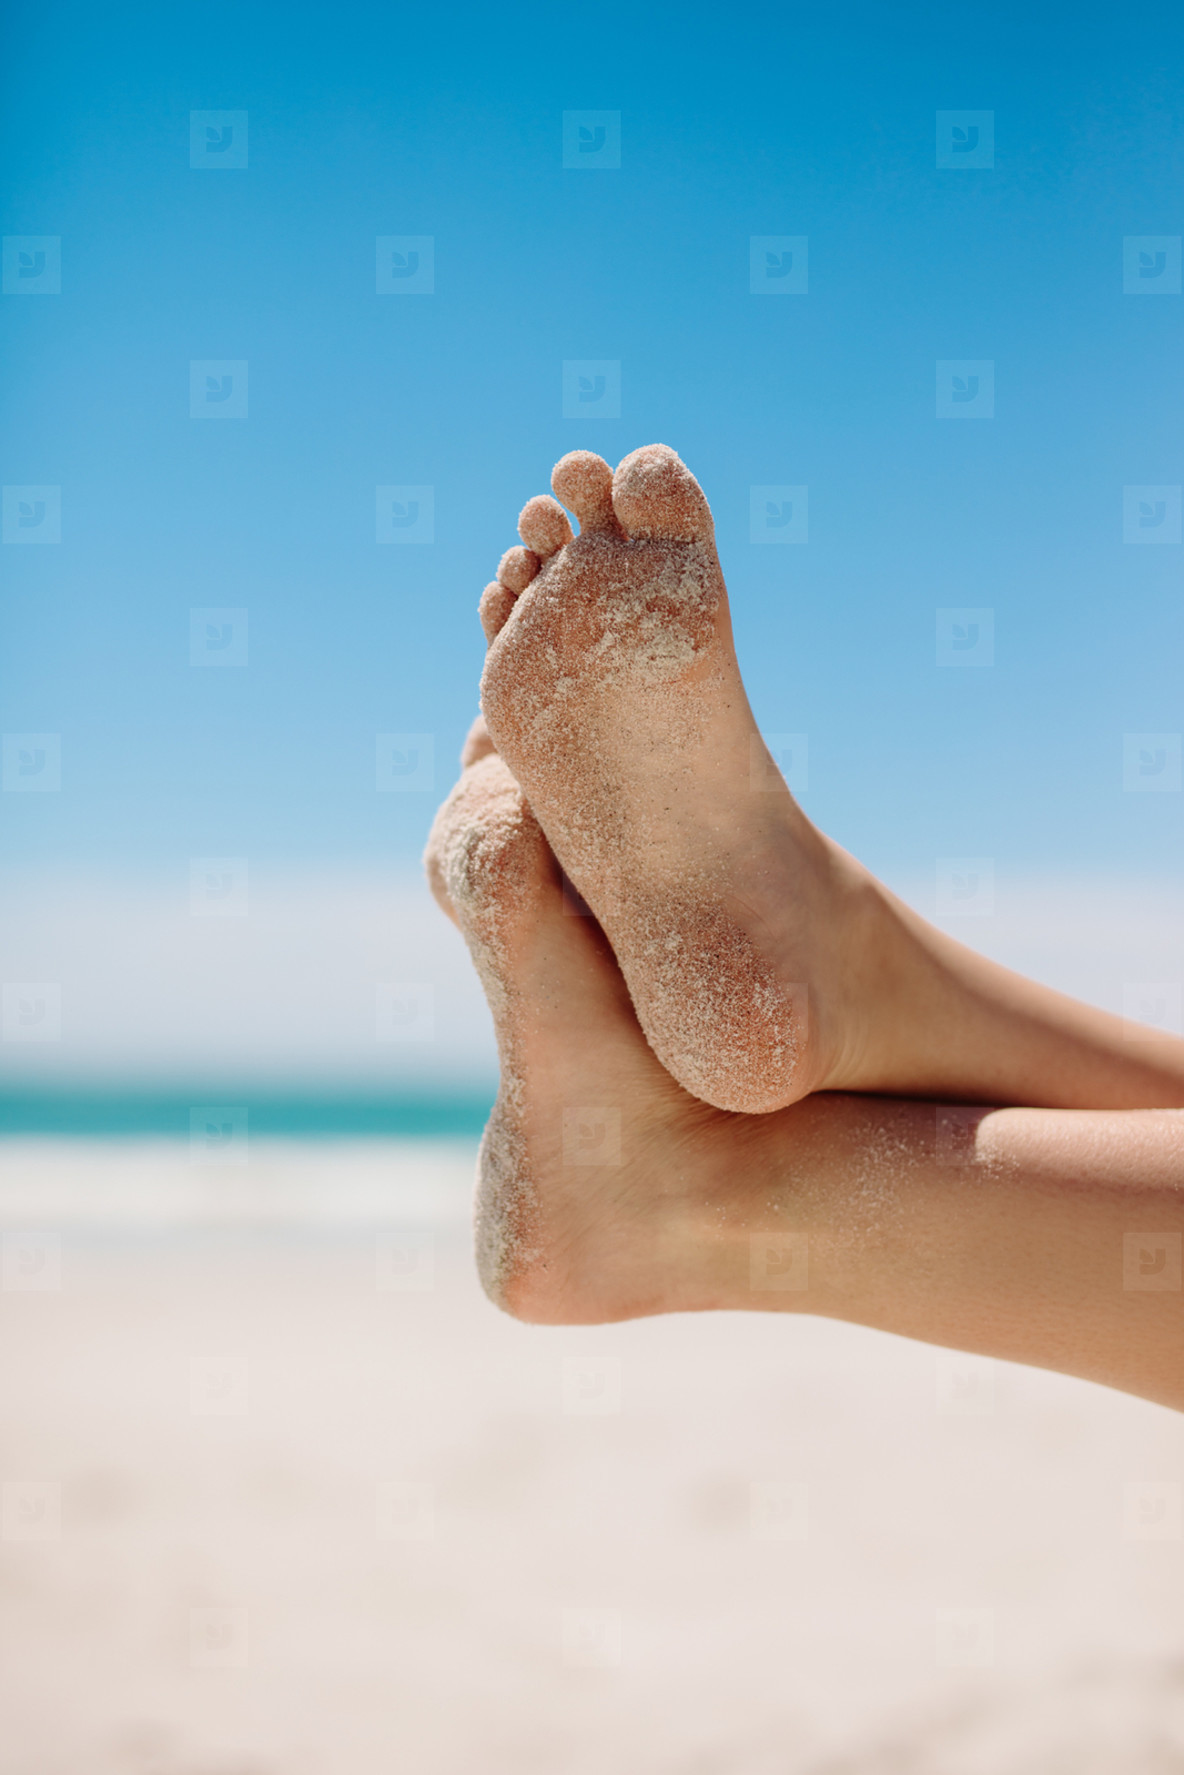 Feet in a relaxed position at the beach